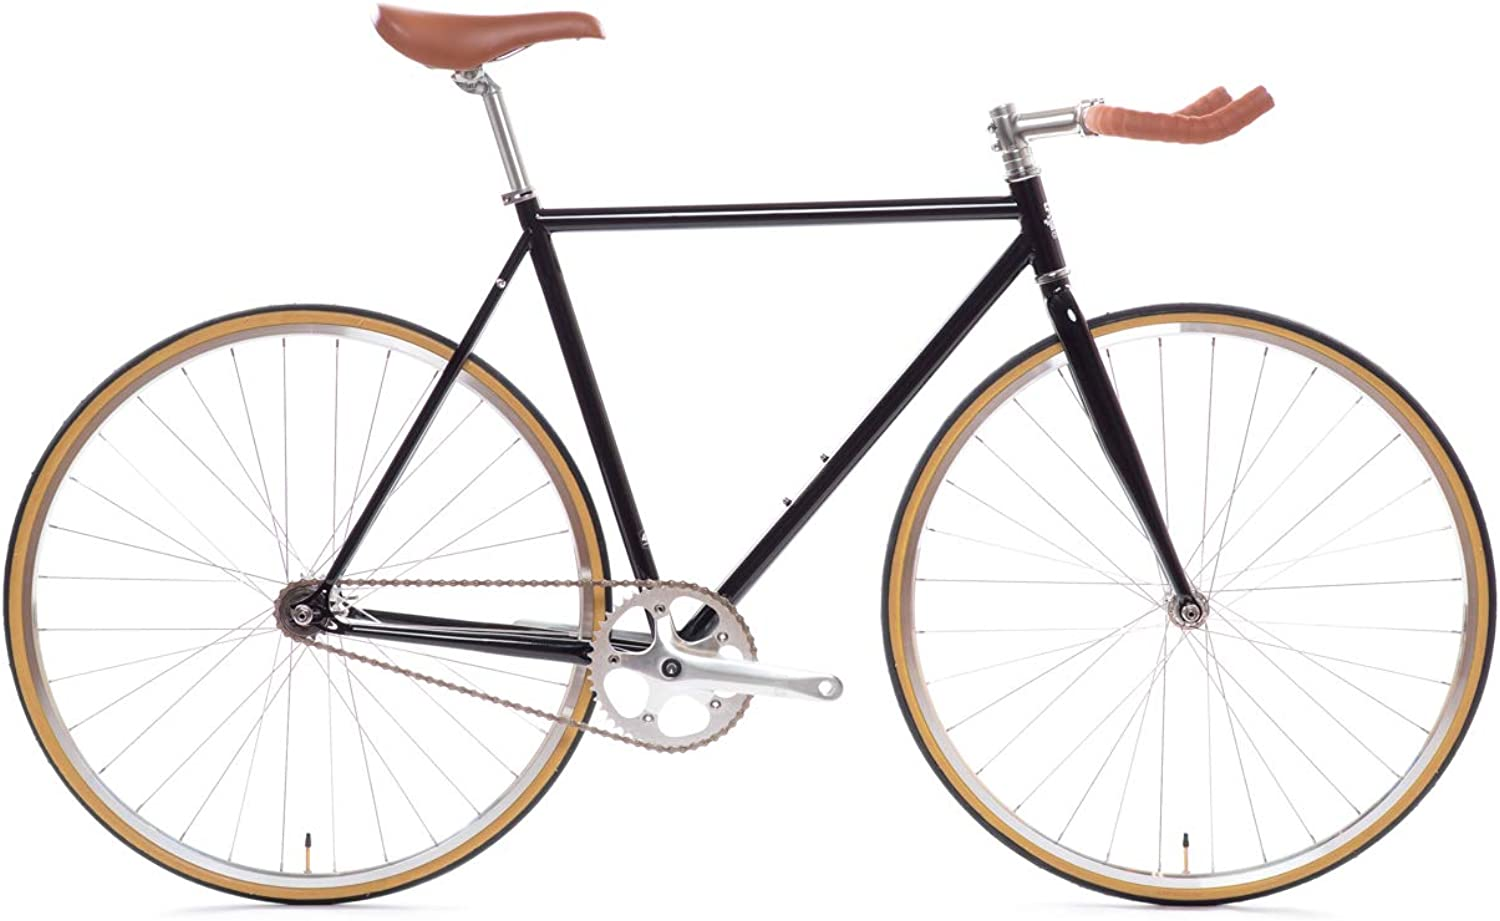 State Bicycle A796201618730 BernardFixed Gear Single Speed Bike, 52cmBullhorn